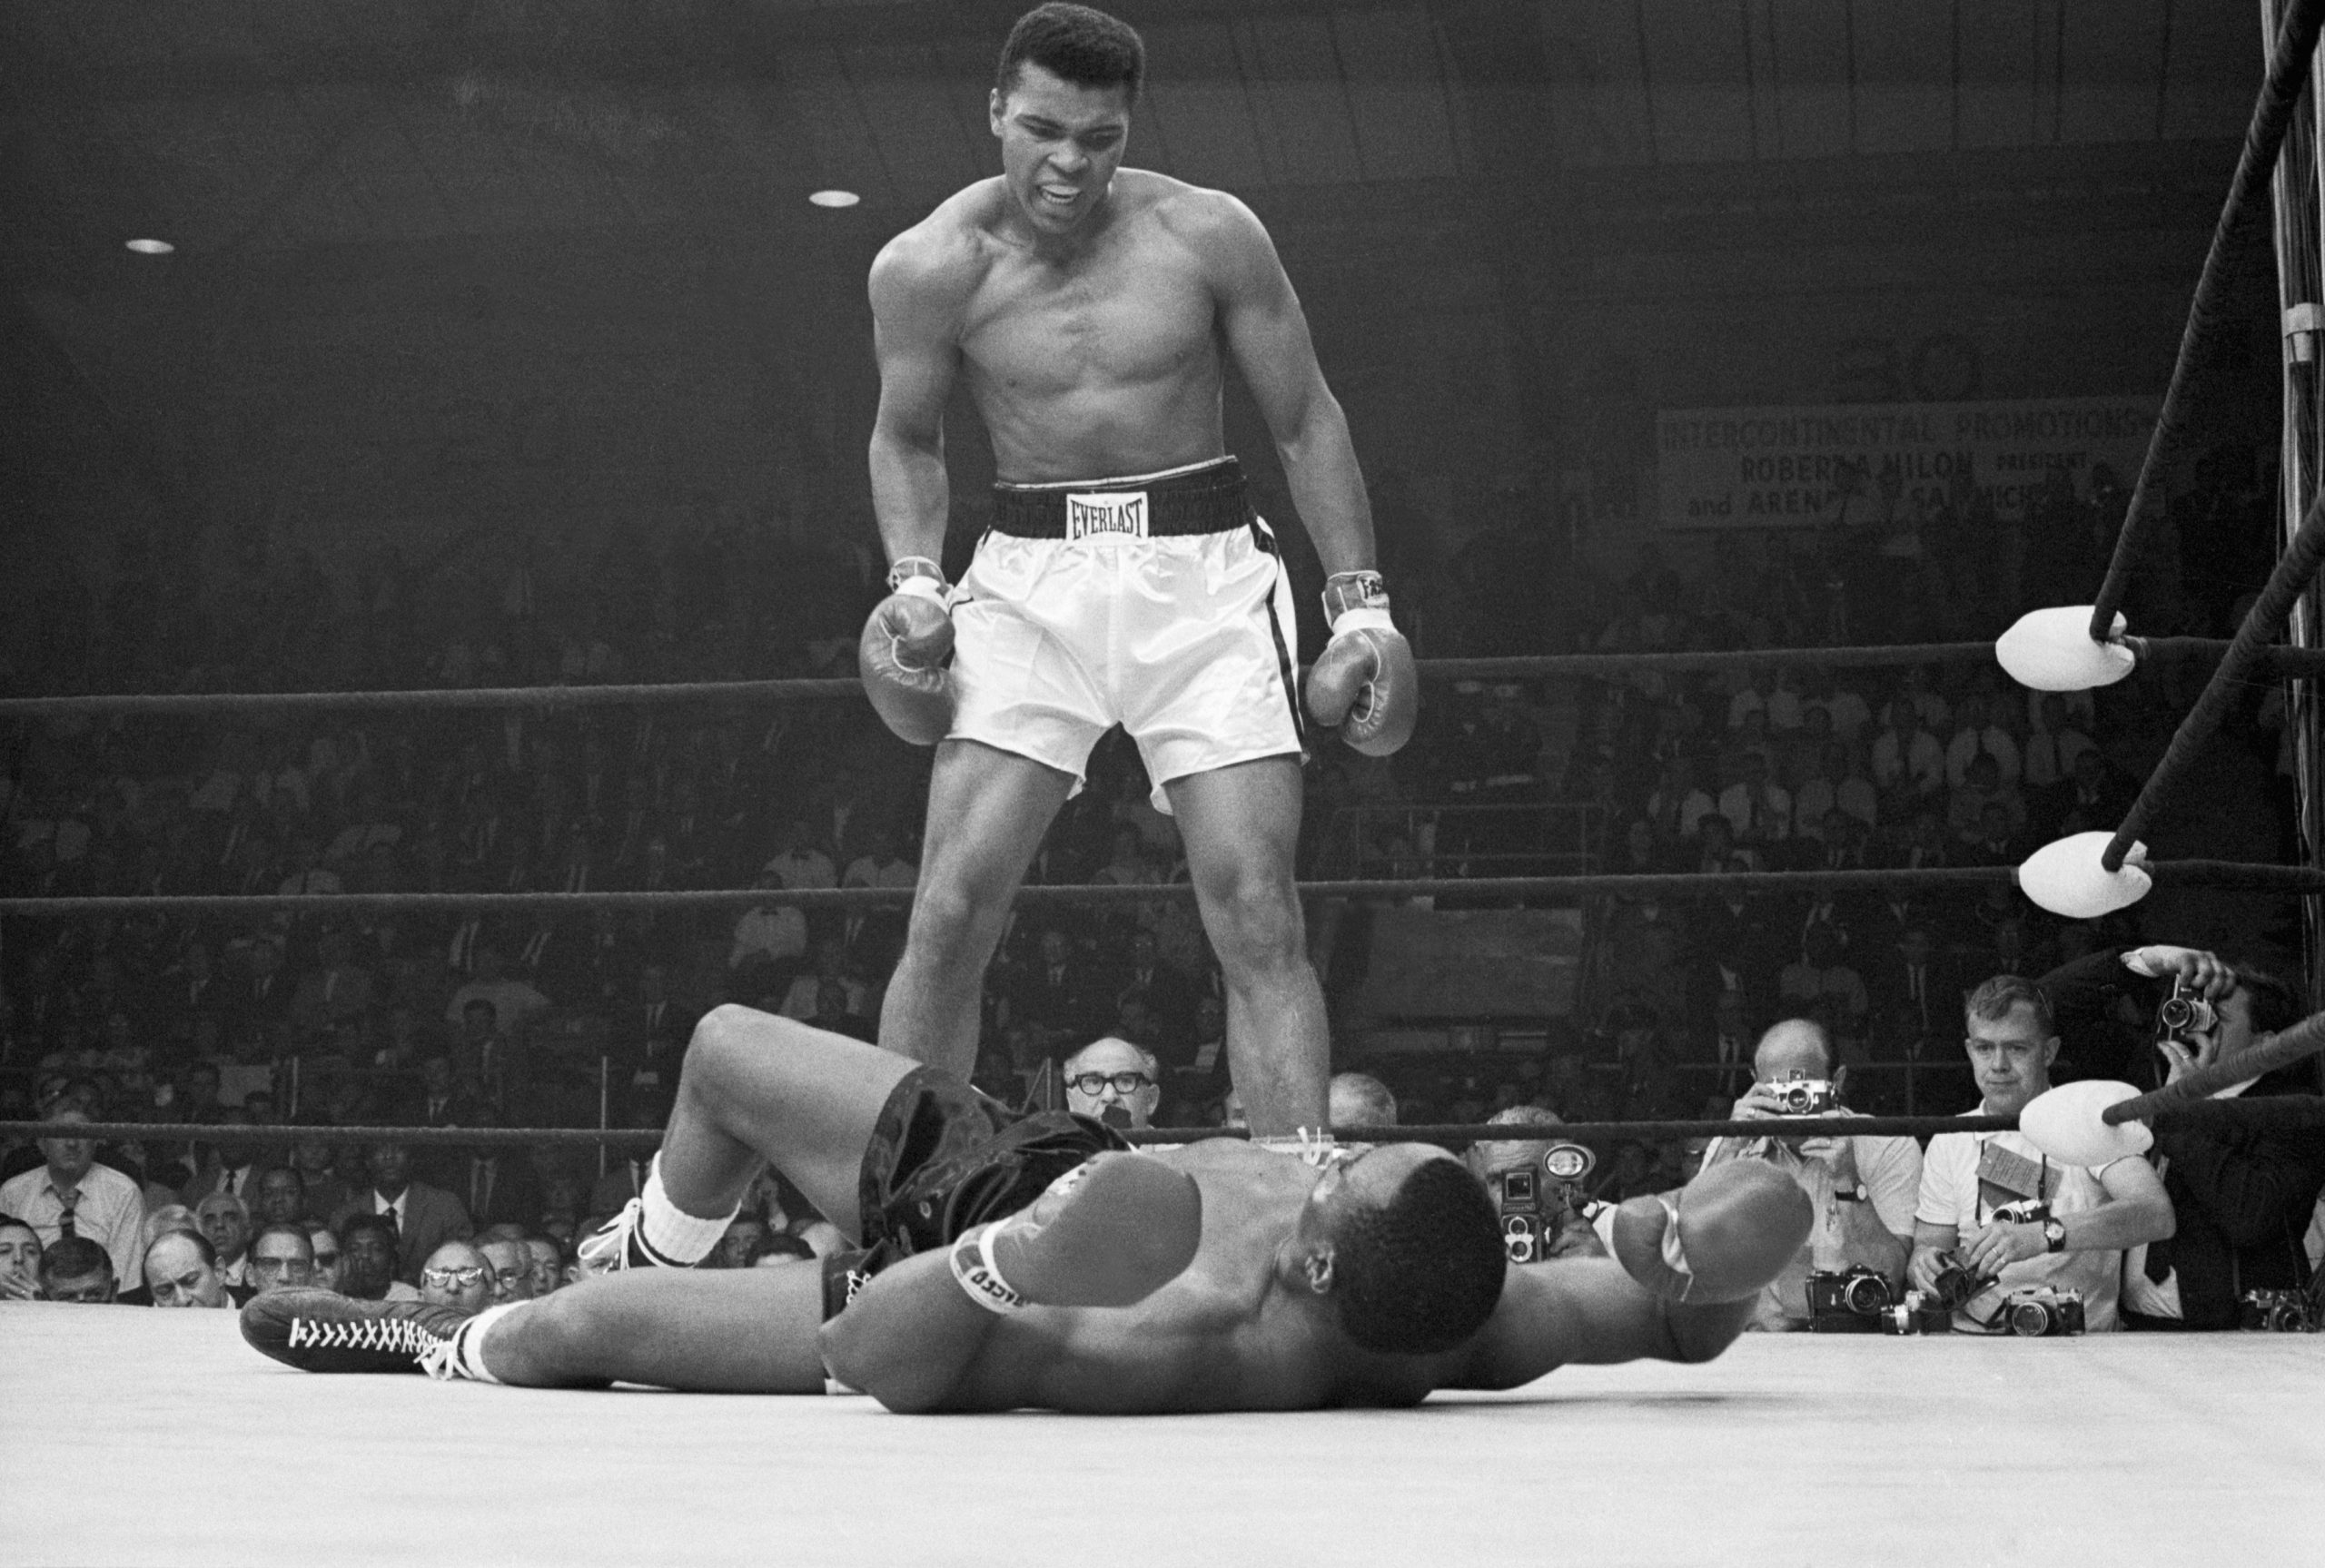 Trump says he could pardon boxing legend Muhammad Ali. What did Ali do?